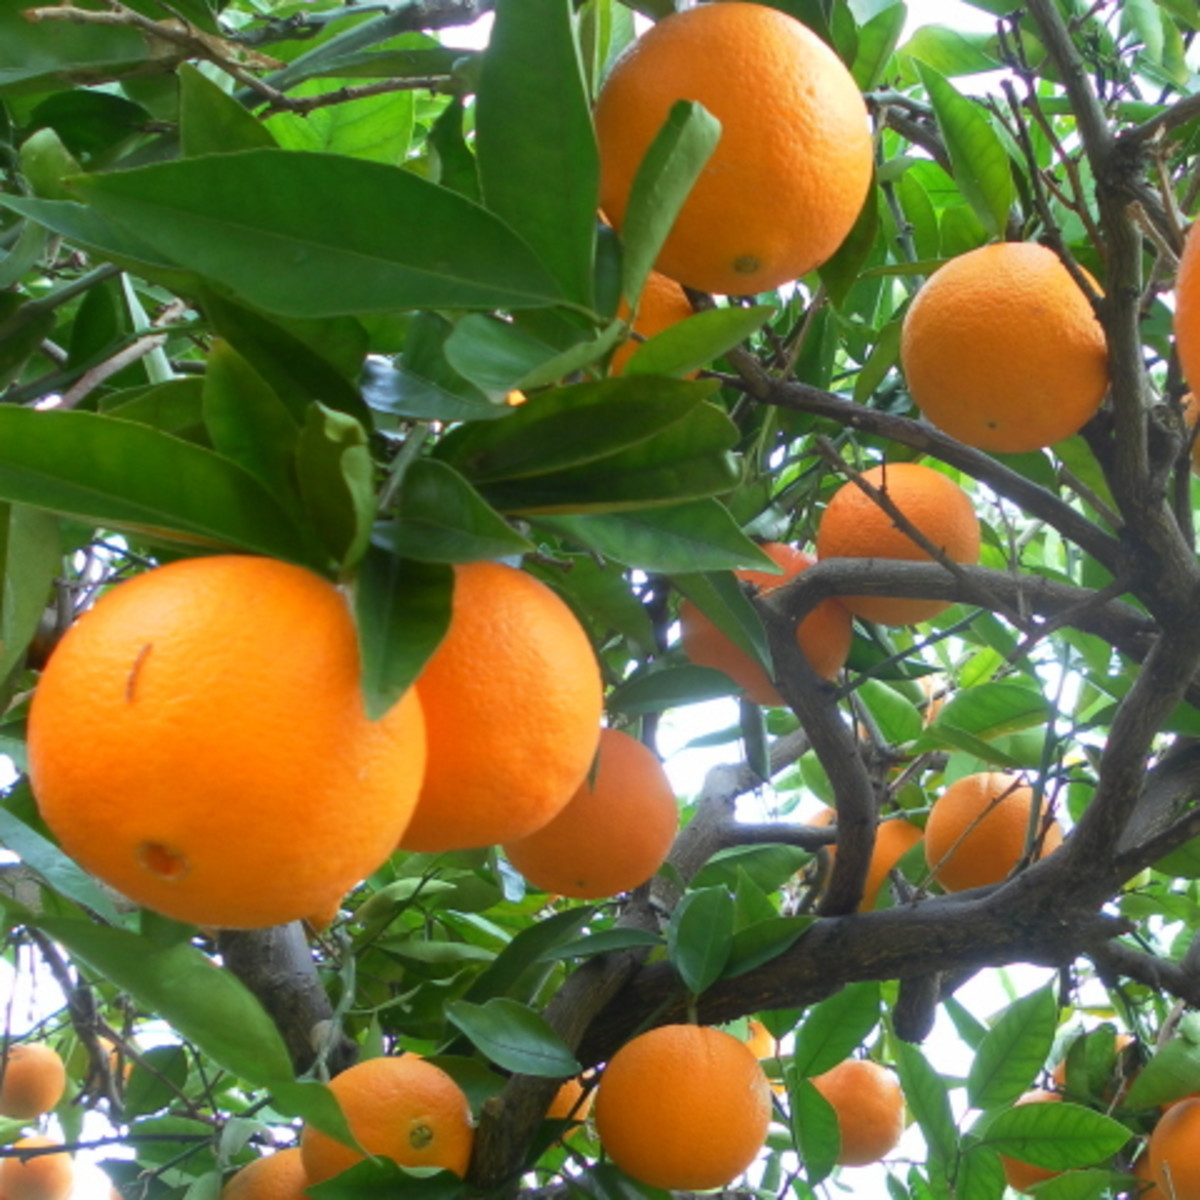 Oranges - With Recipe for Making Homemade Navel Orange Jam or Marmalade